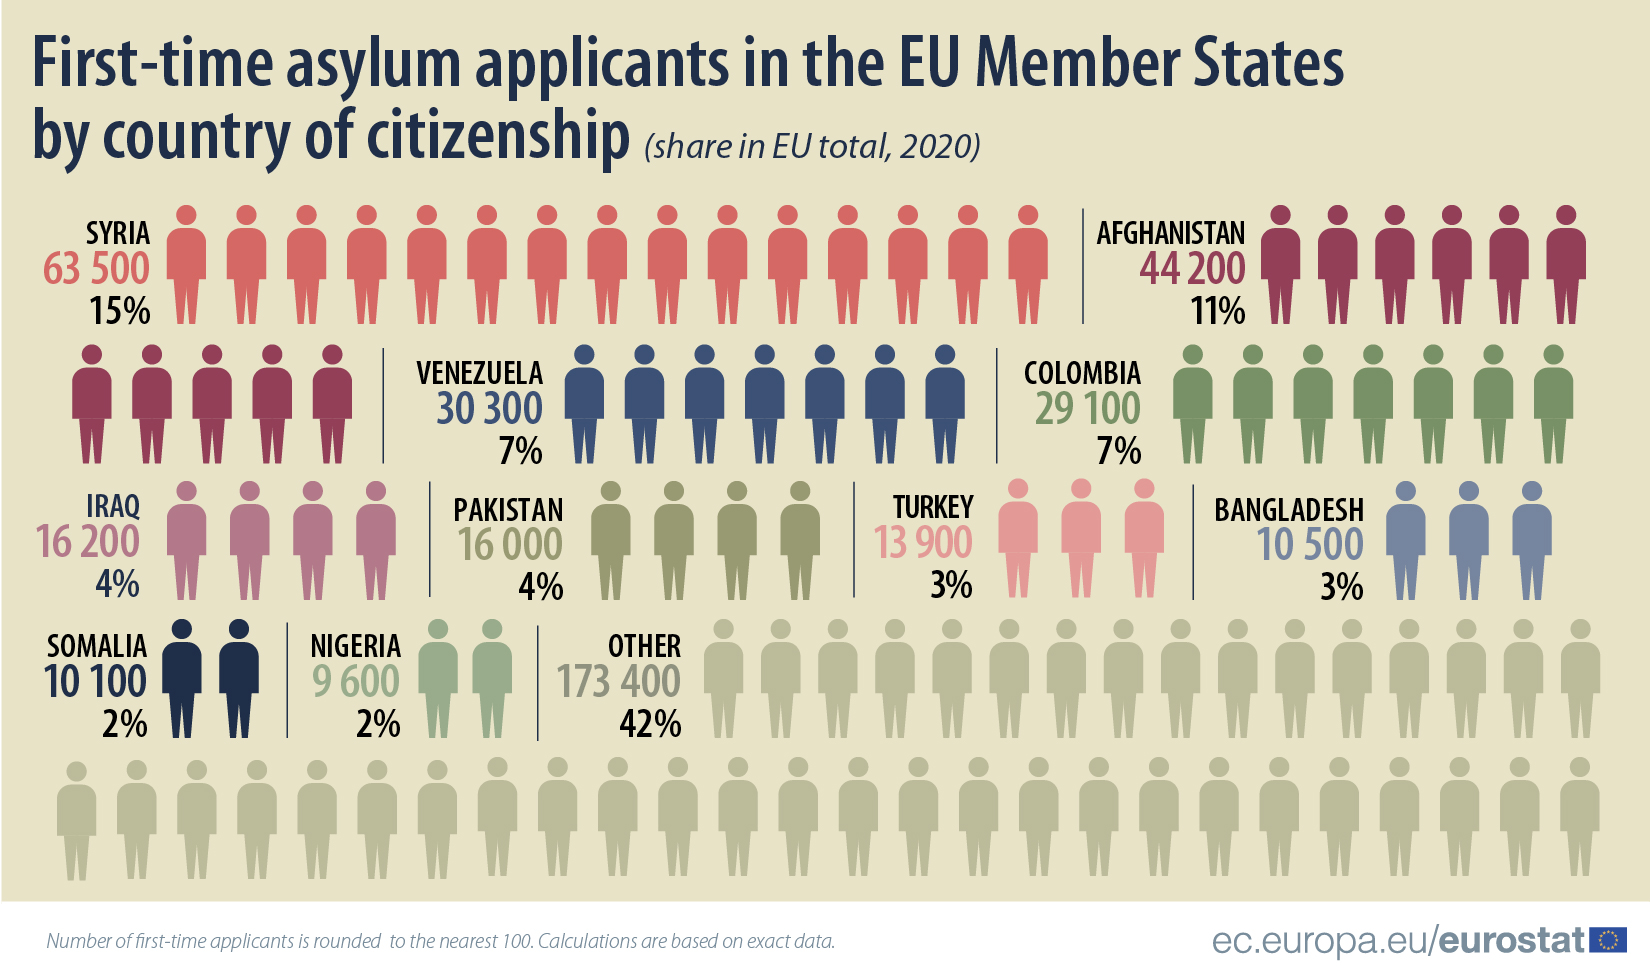 Asylum applicants by citizenship in 2020